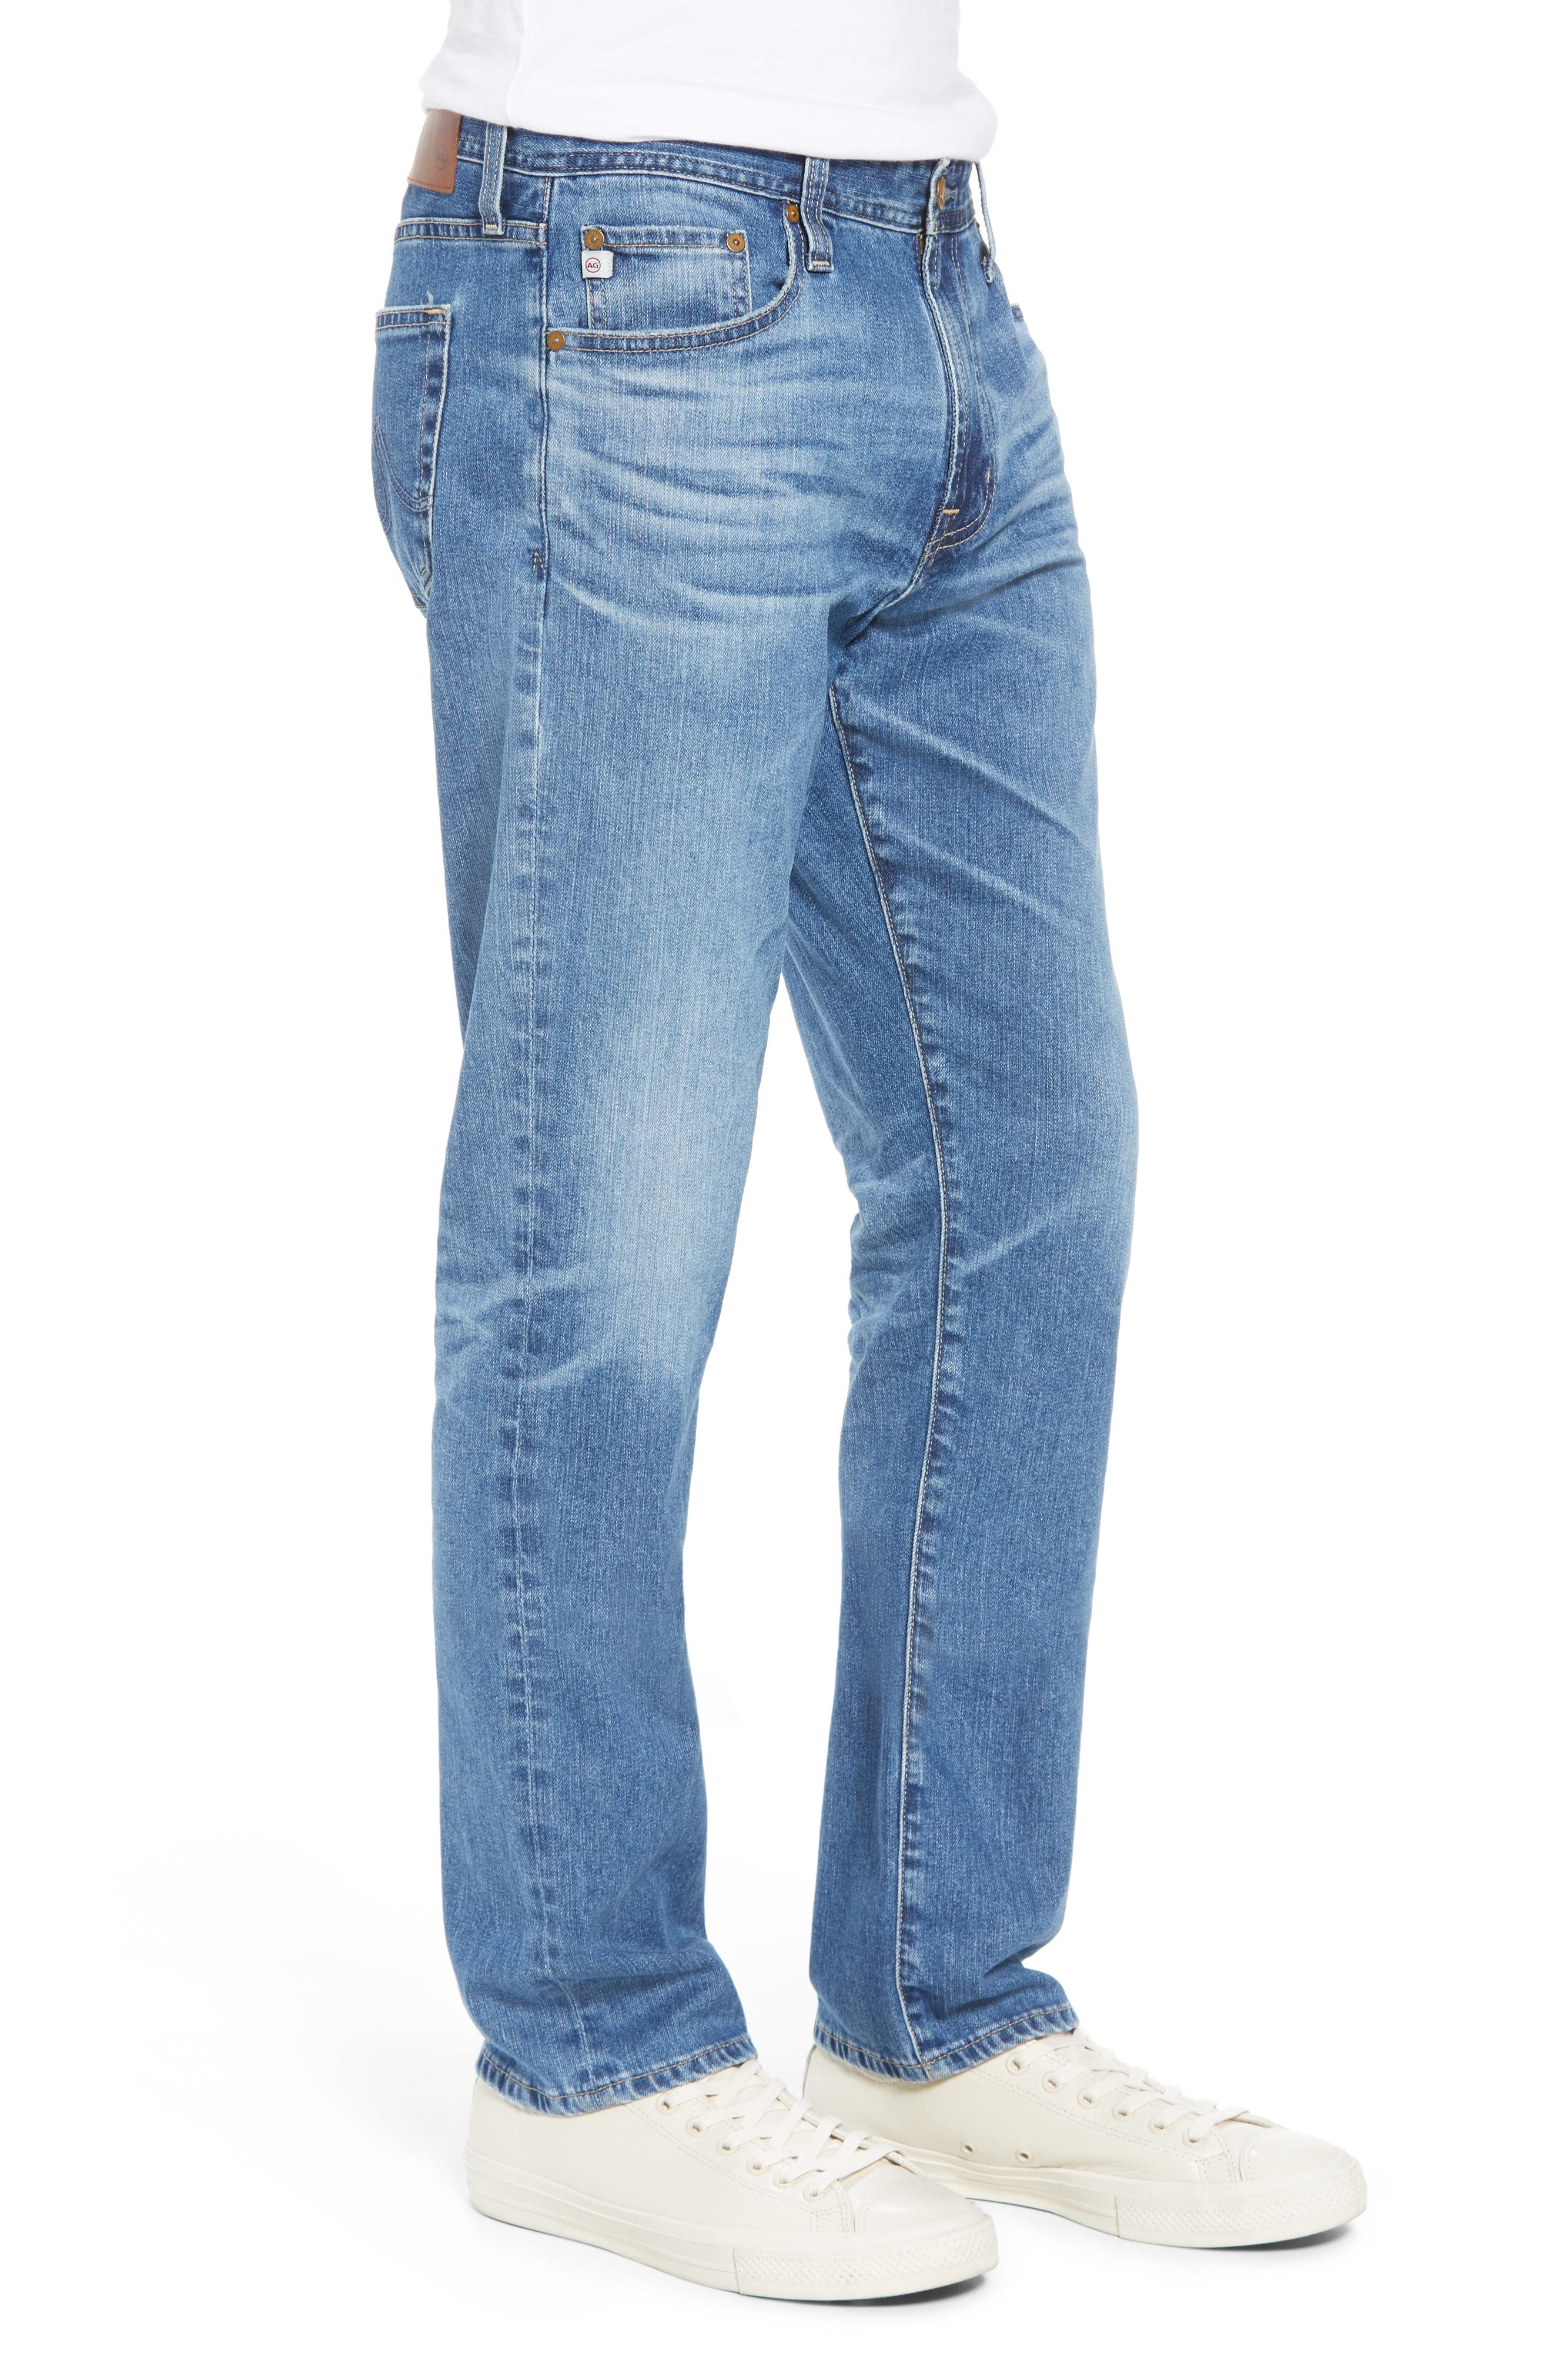 Everett Slim Straight Leg Jeans,                             Alternate thumbnail 3, color,                             15 YEARS OPEN ROAD